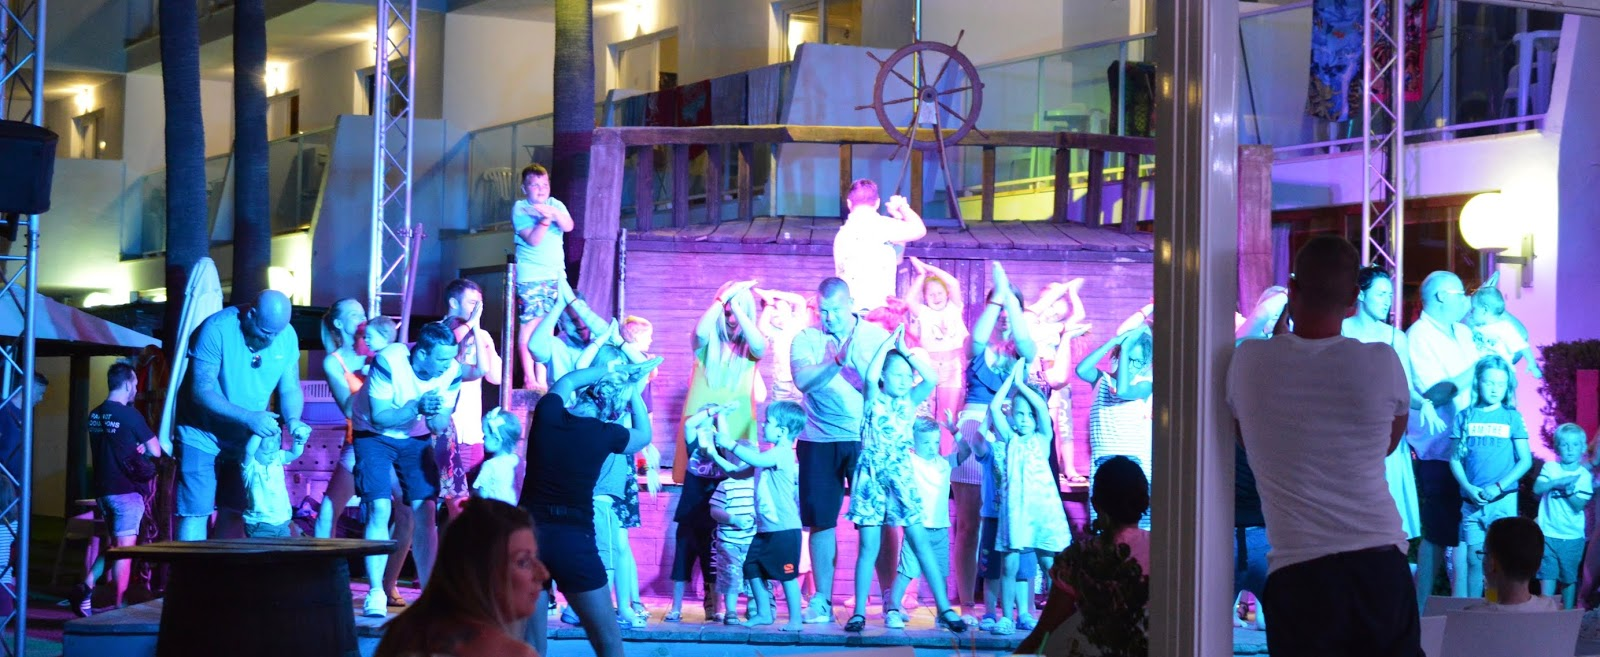 Pirates Village Santa Ponsa | Jet 2 Holidays Review  - mini disco